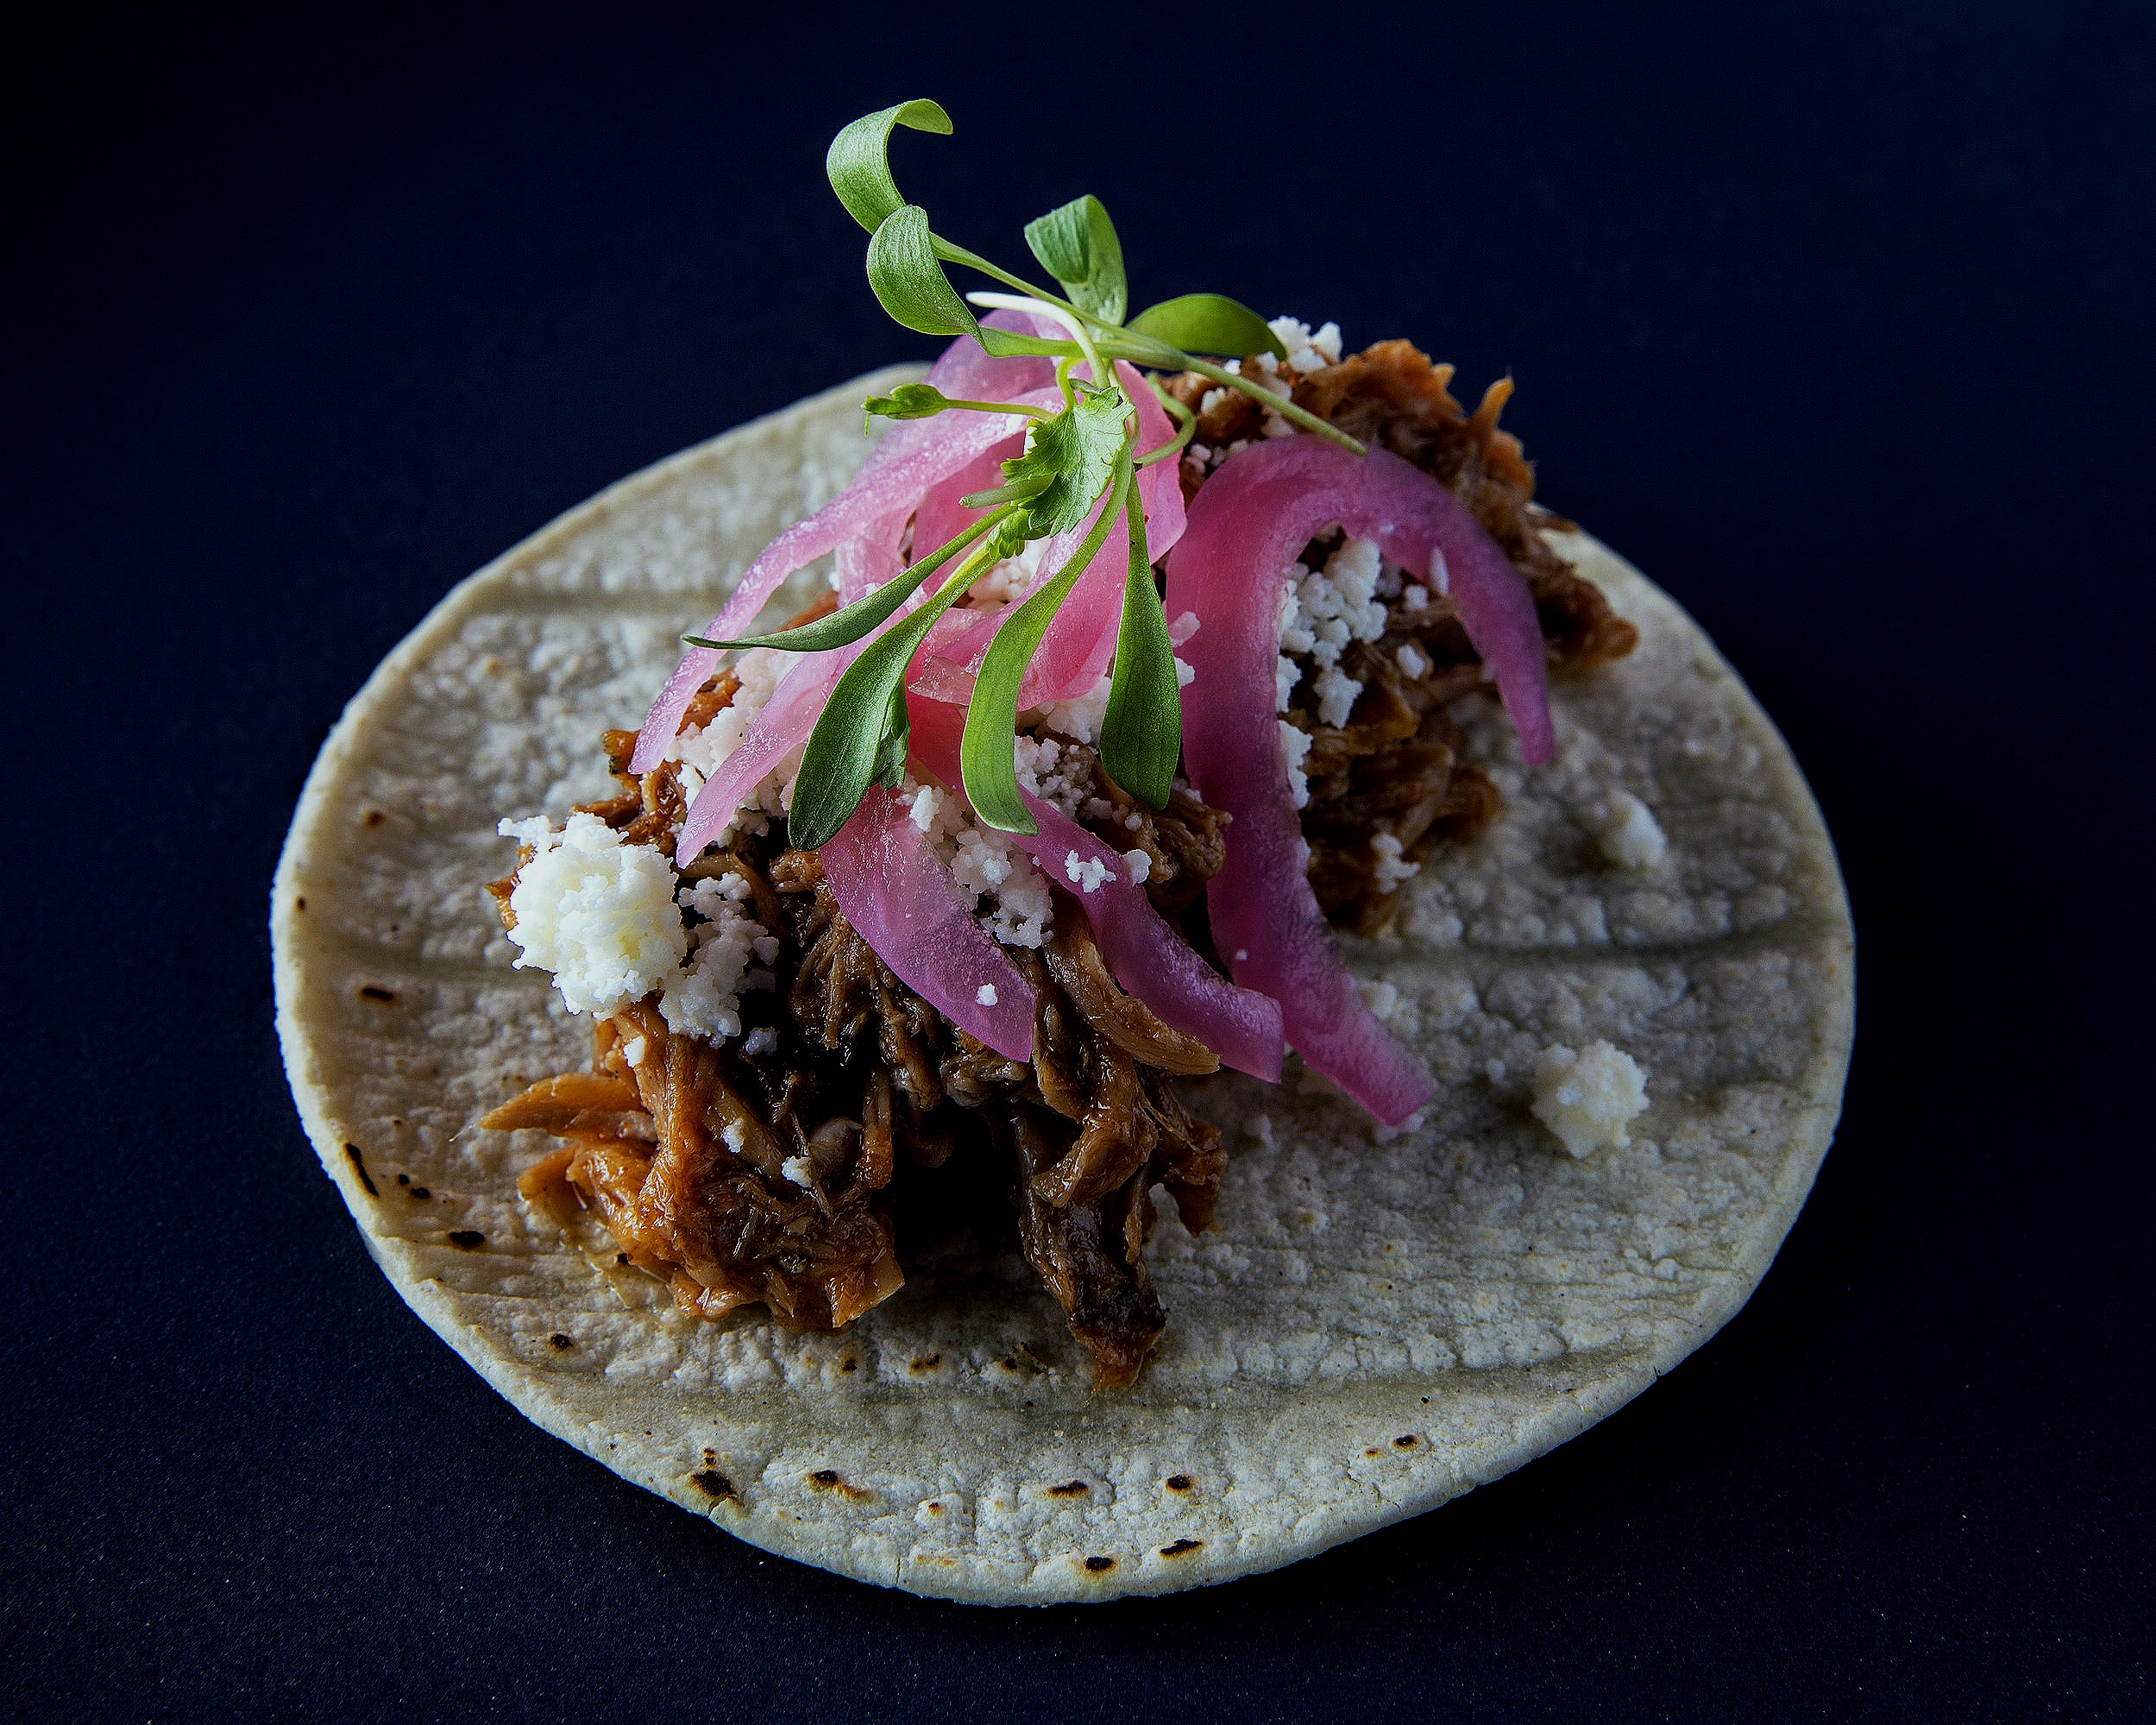 Pulled pork tacos with Cojita and pickled red onions